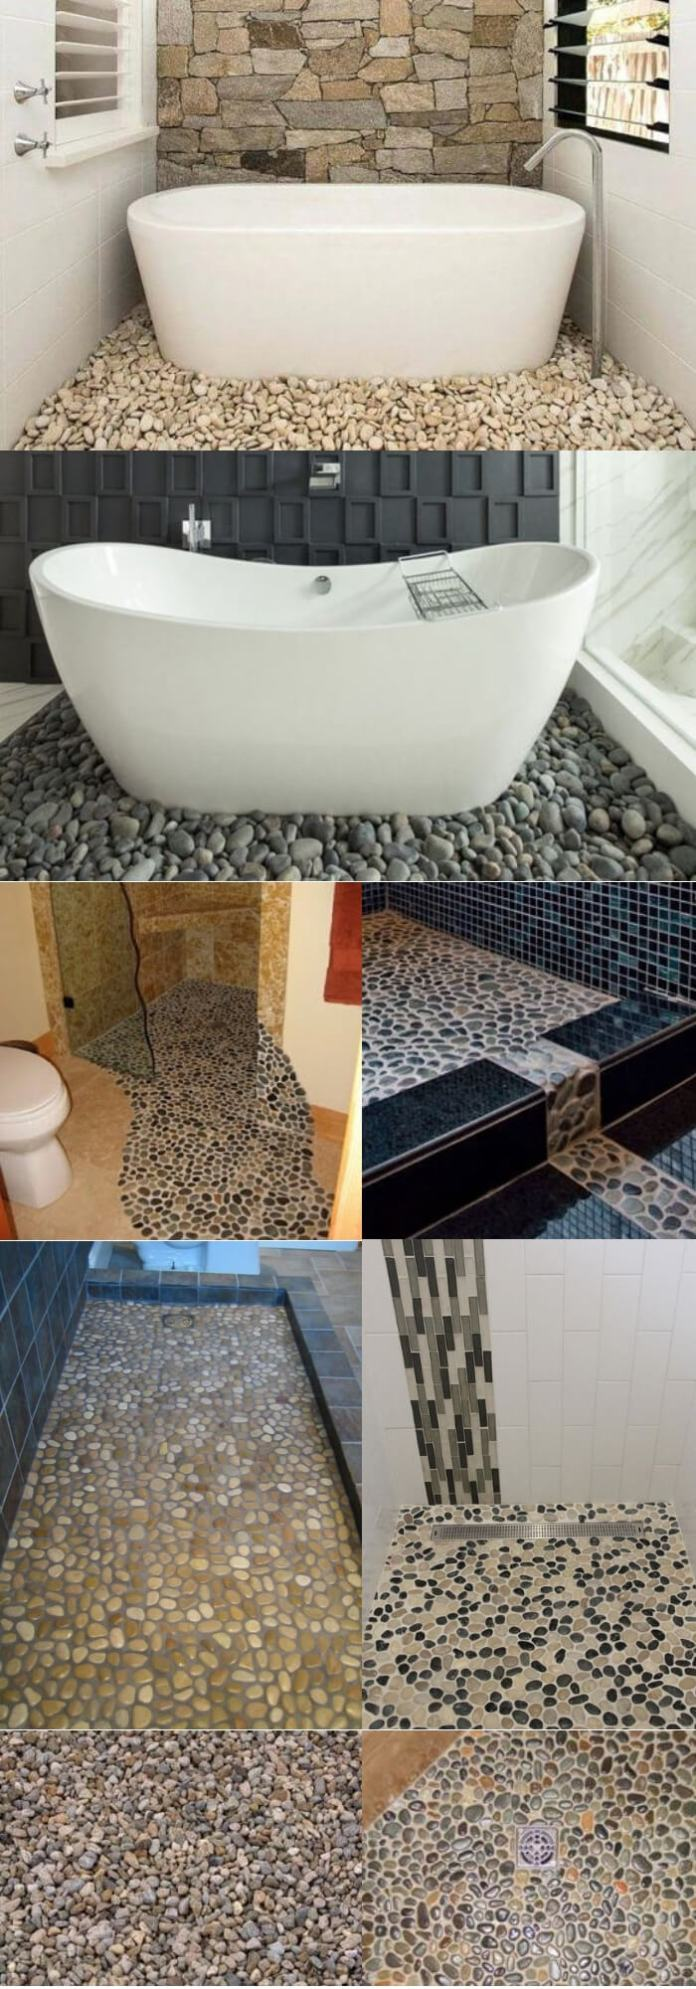 Gravel bathroom floor tile ideas